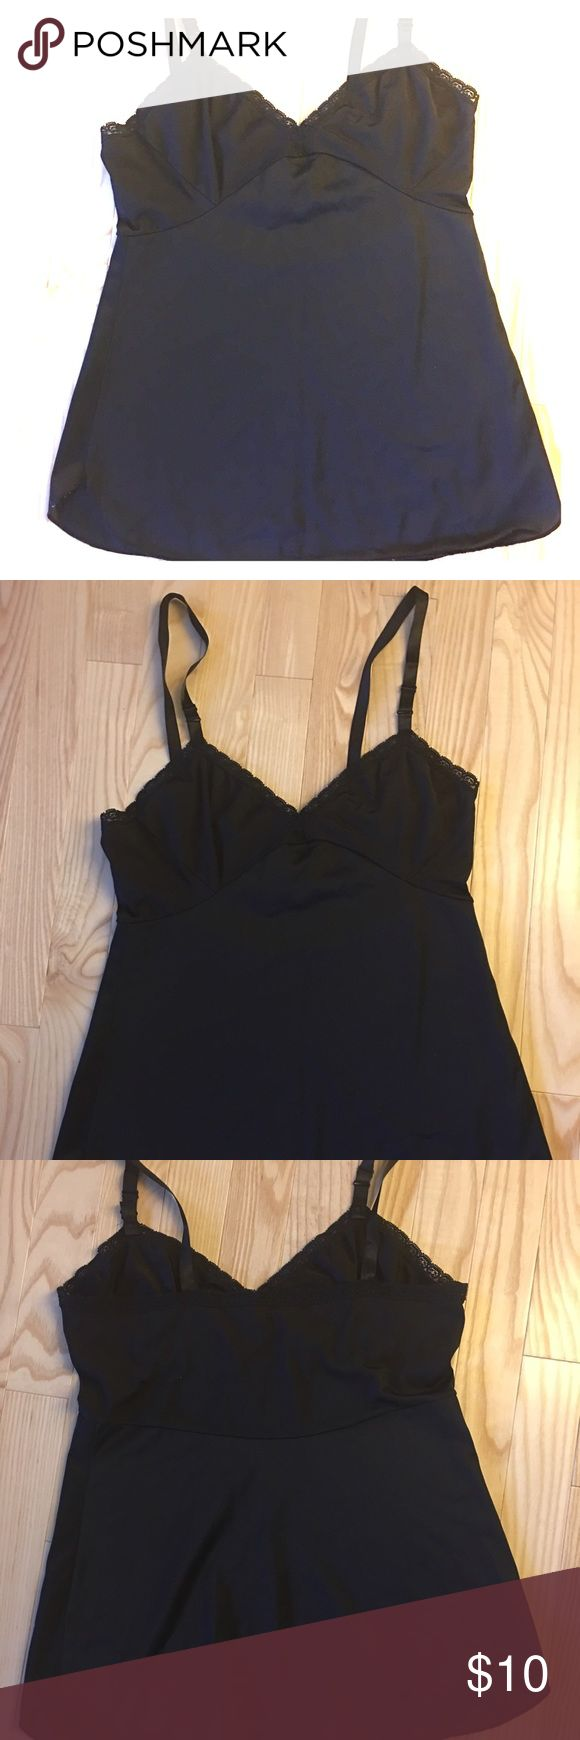 Vintage black cami with adjustable straps This is a super sleek and cute vintage black camisole with adjustable straps size 34, nice to wear under a see through blouse or just alone , on trend Vintage Tops Camisoles